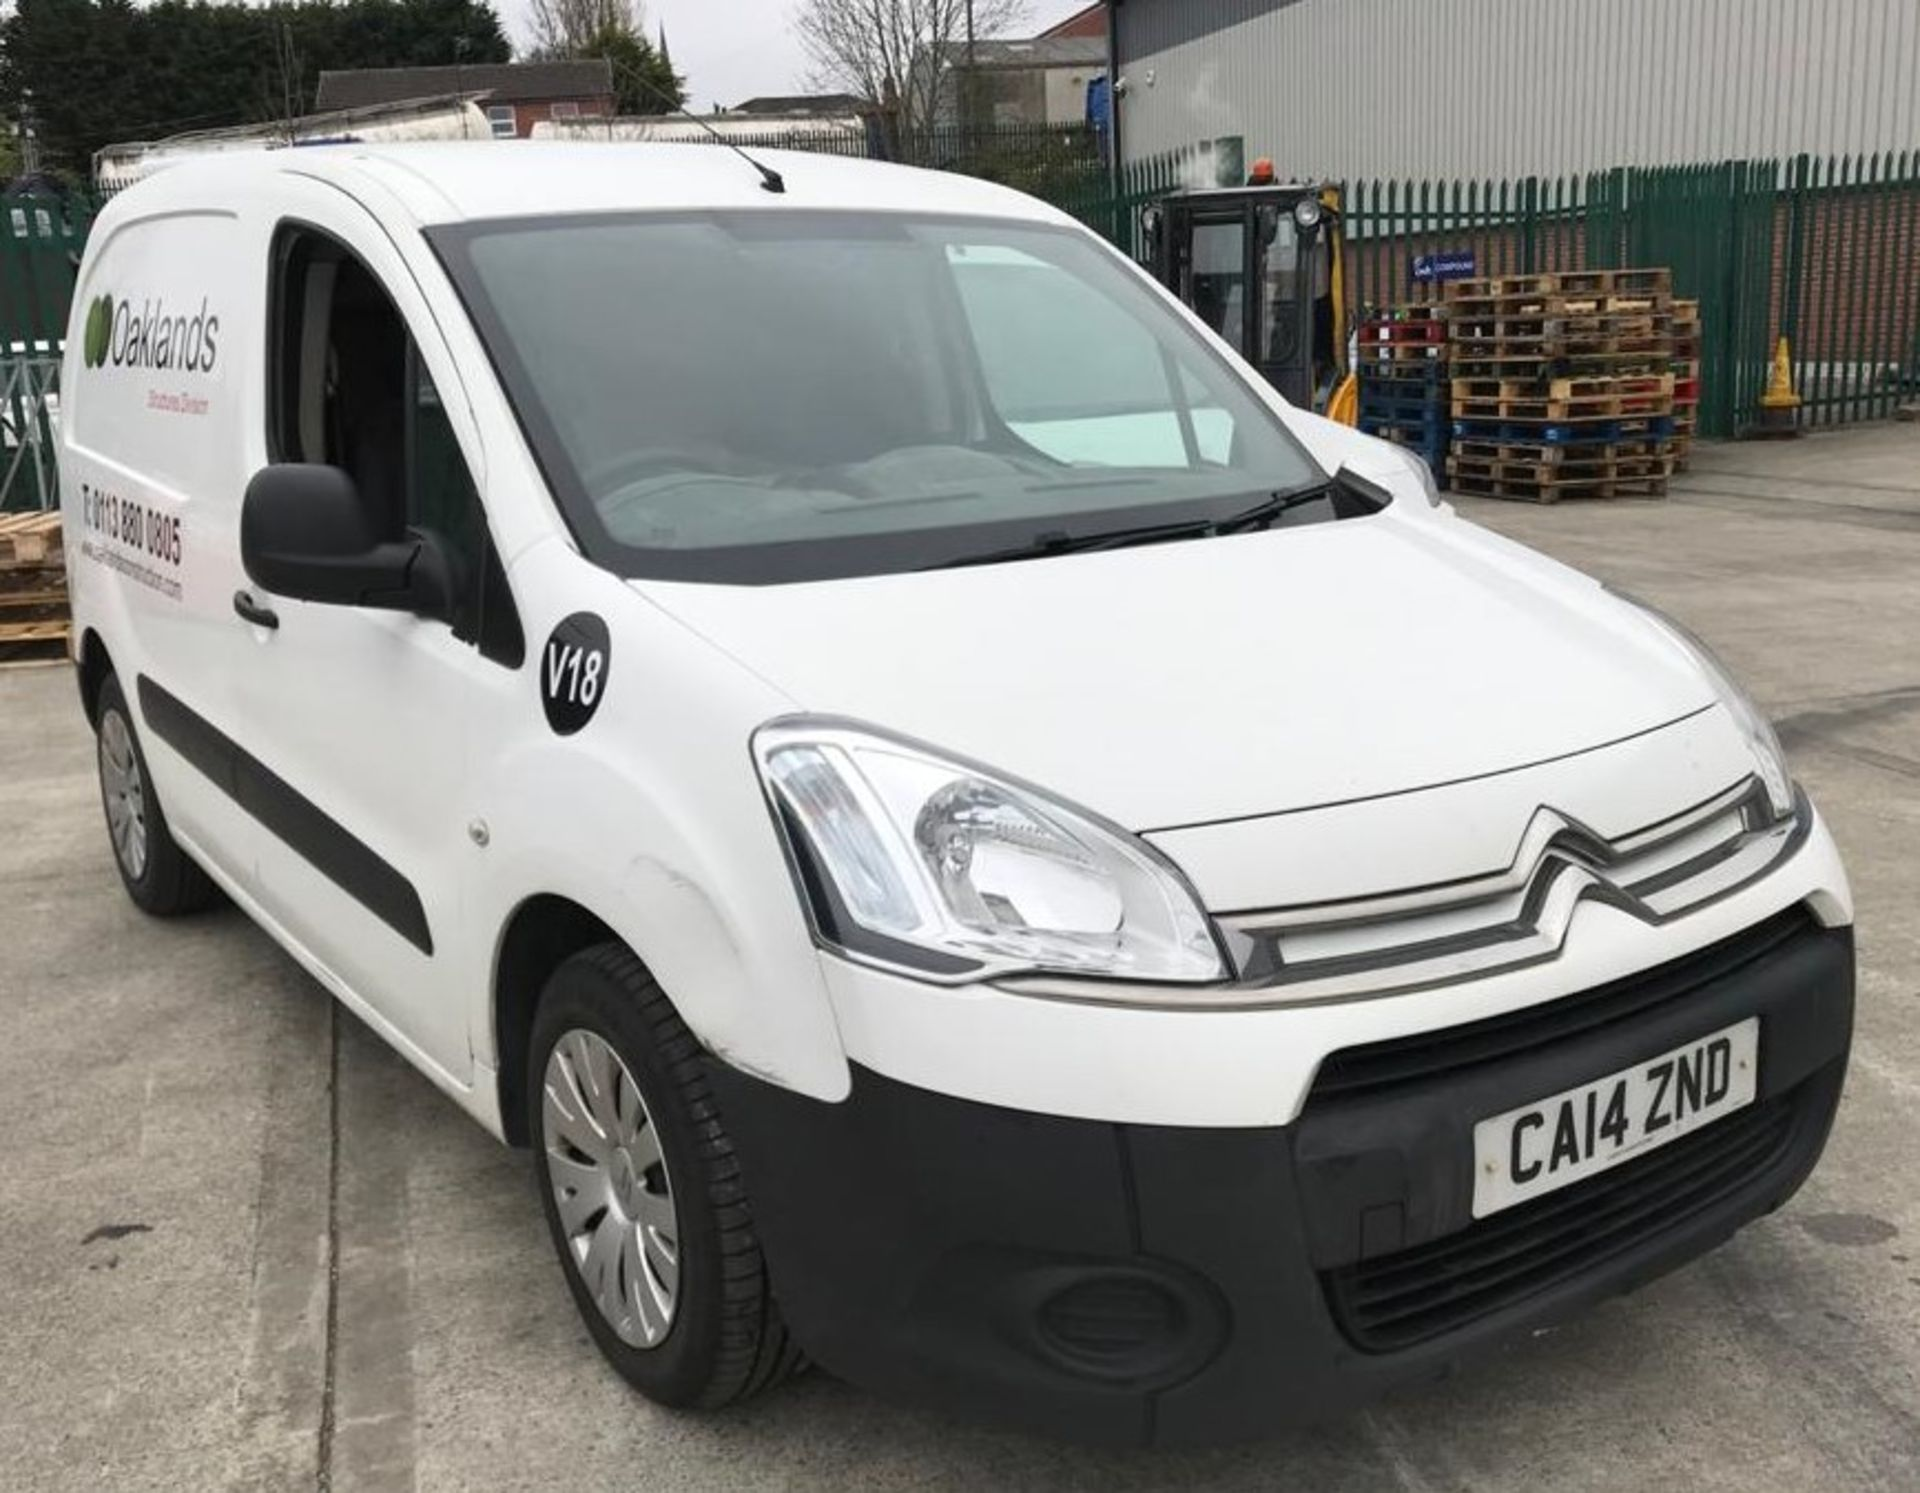 Lot 13 - CITROEN BERLINGO 625 LX 1.